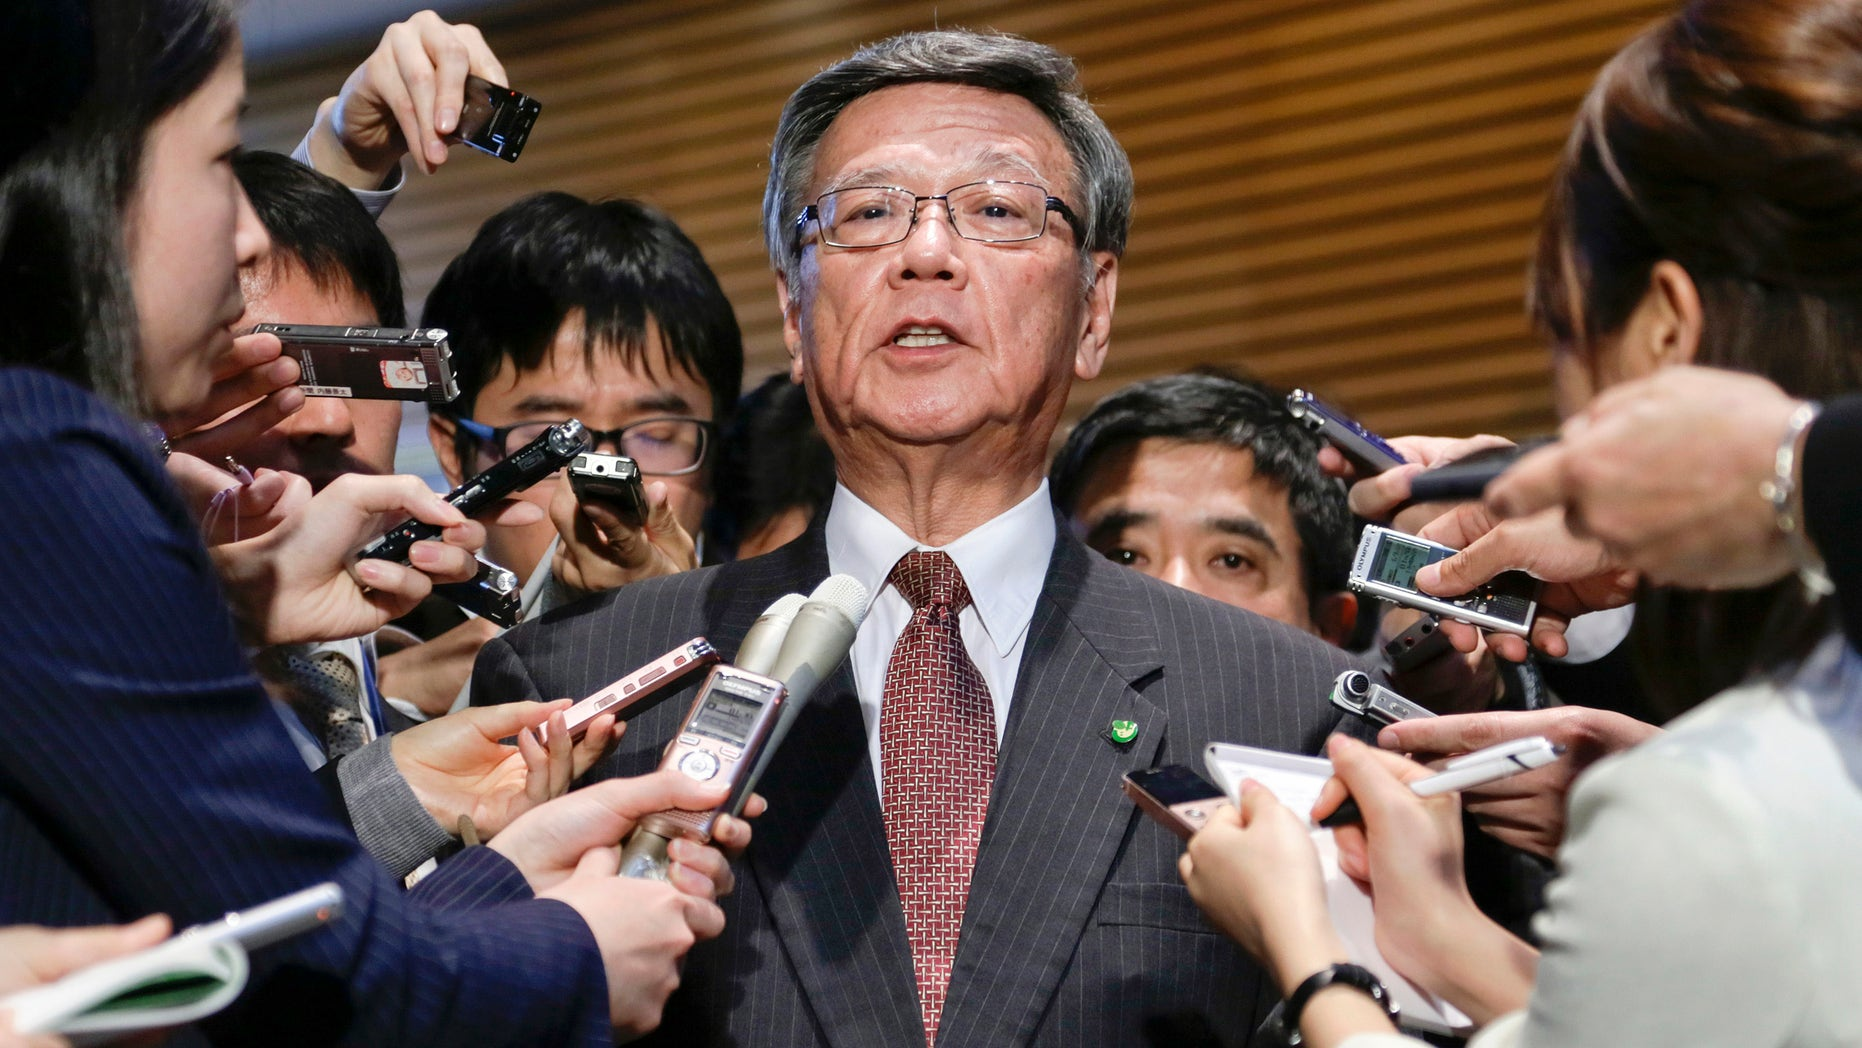 FILE - In this March 4, 2016 file photo, Okinawa Gov. Takeshi Onaga is surrounded by reporters after a meeting with Japanese Prime Minister Shinzo Abe at the latter's official residence in Tokyo.  Japan and the U.S. have marked a partial return of the land used by American troops to Okinawa in a ceremony on the southern island Thursday, Dec. 22, 2016, , but there was no sign the move was helping to lessen protests against the heavy U.S. military presence. Demanding an unconditional land return, Okinawa Gov. Onaga skipped Thursday's ceremony and joined a protest. (Kimimasa Mayama/Pool Photo via AP, File)